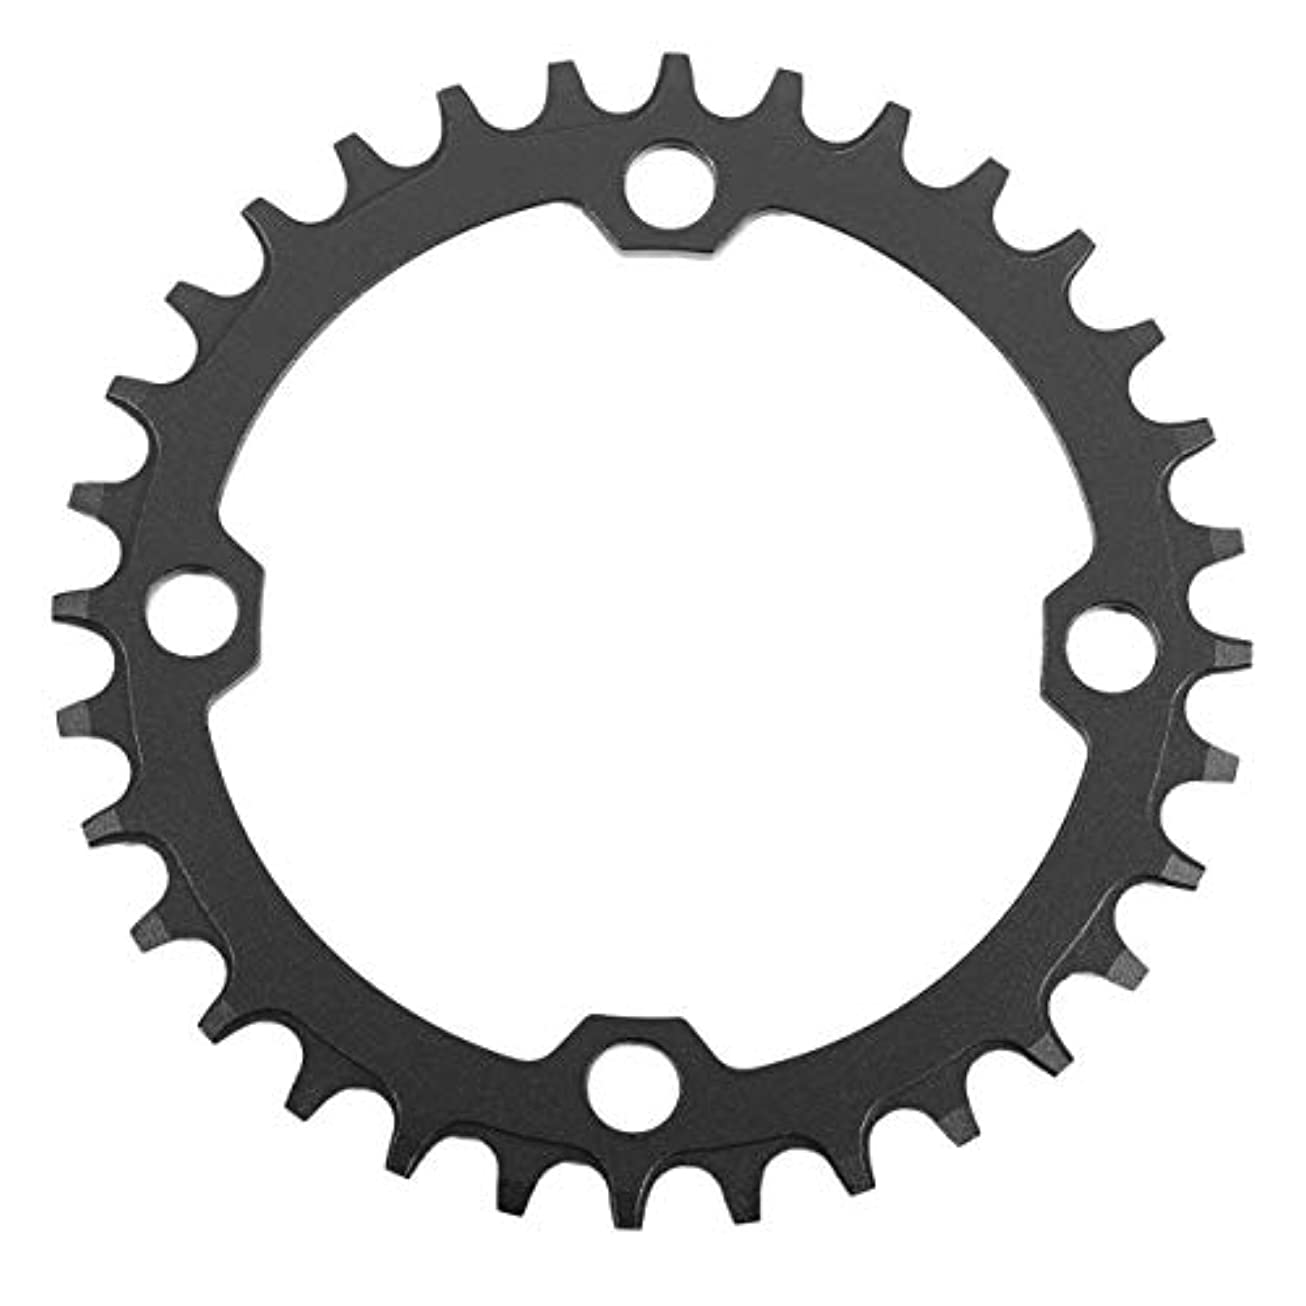 頑丈長いです実行可能DECKAS Narrow Wide Bike MTB Crank Round Oval Chainring Chain Ring自転車Chainwheel Bike Circle Single Plate-ブラック